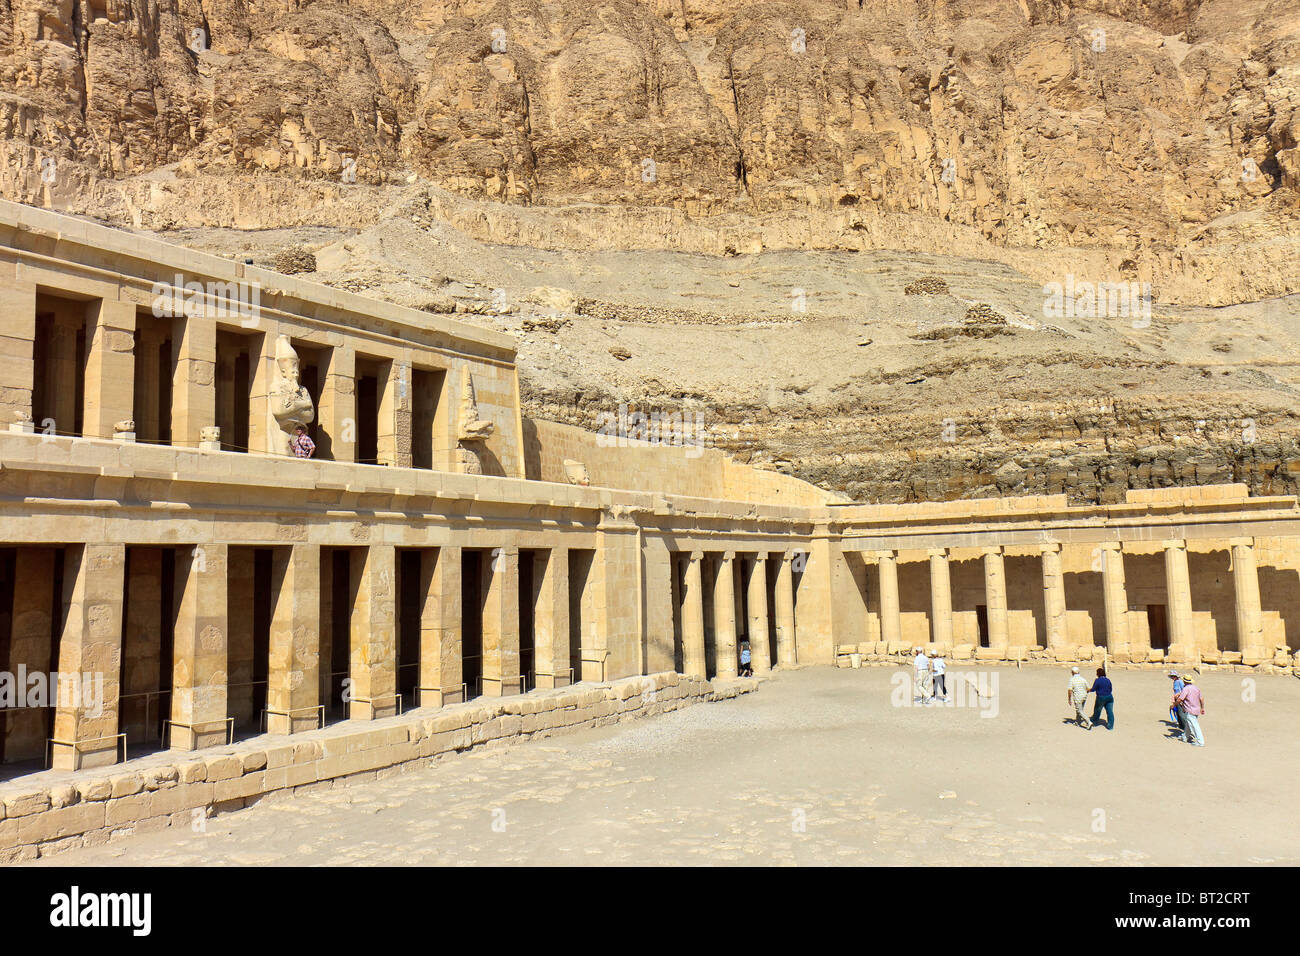 Egypt Thebes Temple Of Queen Hatchepsut - Stock Image